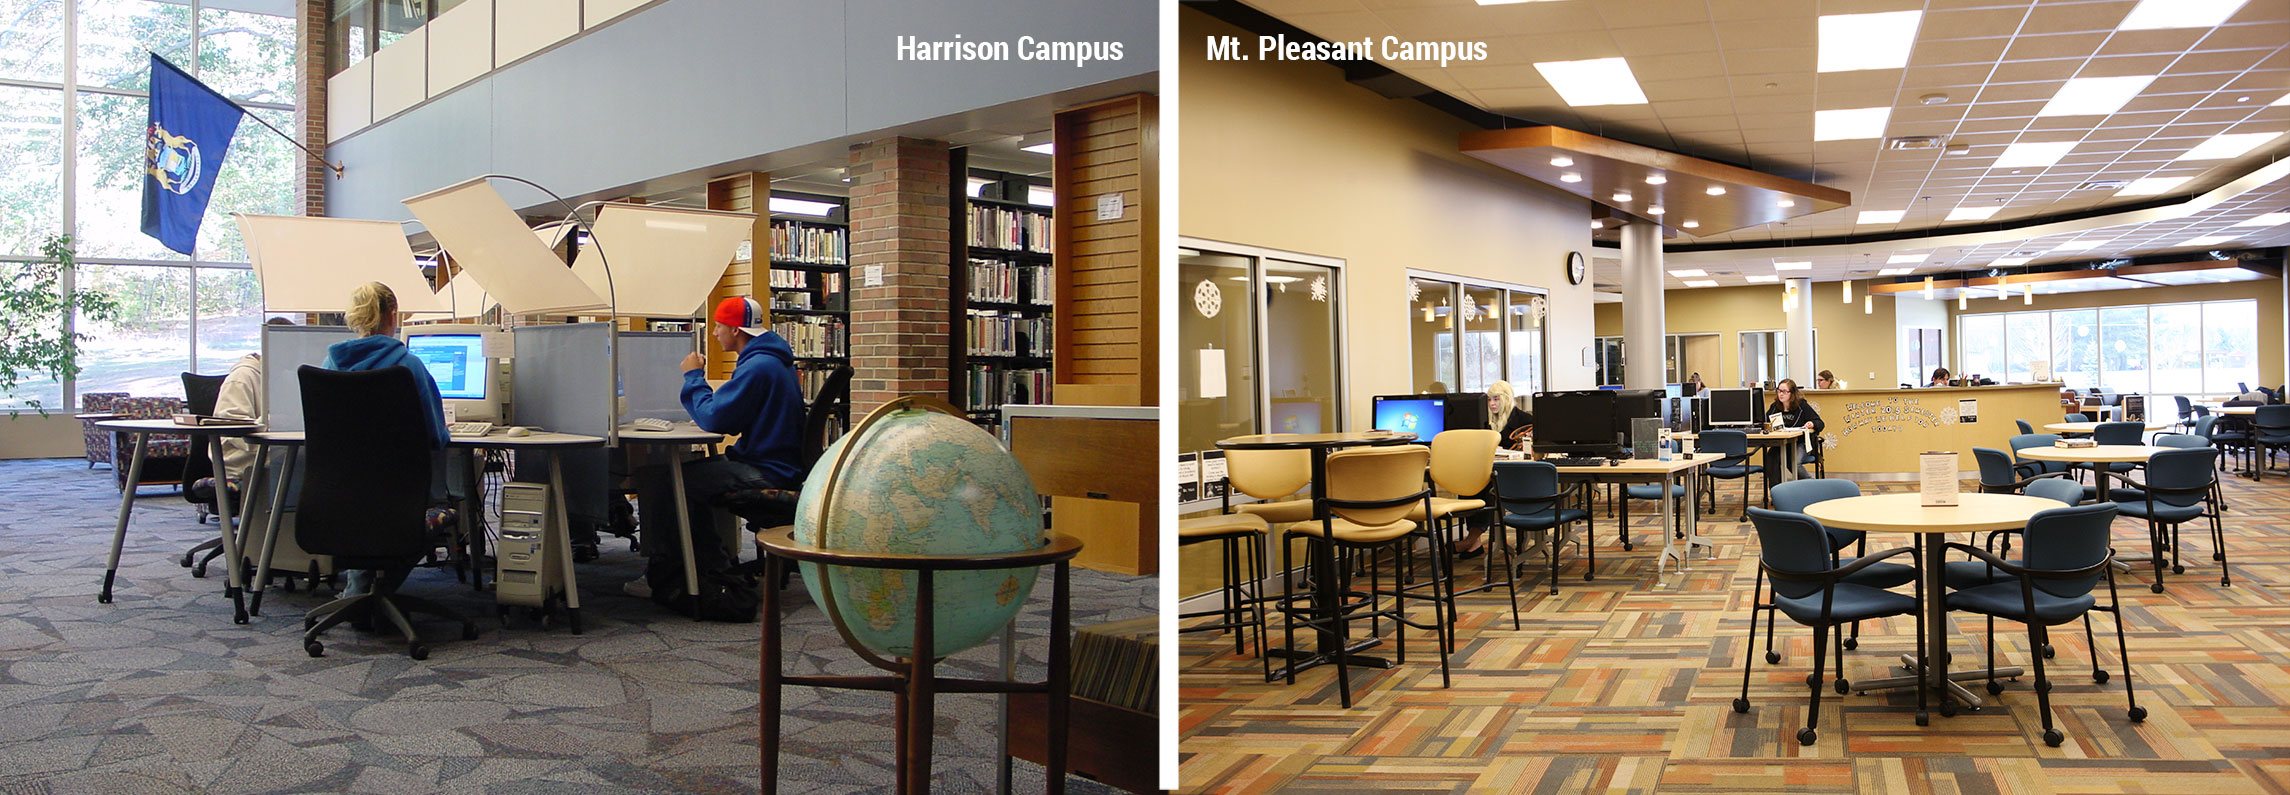 Interior views of both libraries on the Harrison and Mount Pleasant Campuses. On the left, three students sit at desktop machines in a sectioned computer pool. On the right, The Mount Pleasant Campus has multiple study tables and computers set up surrounding the circular information desk, where the staff work.